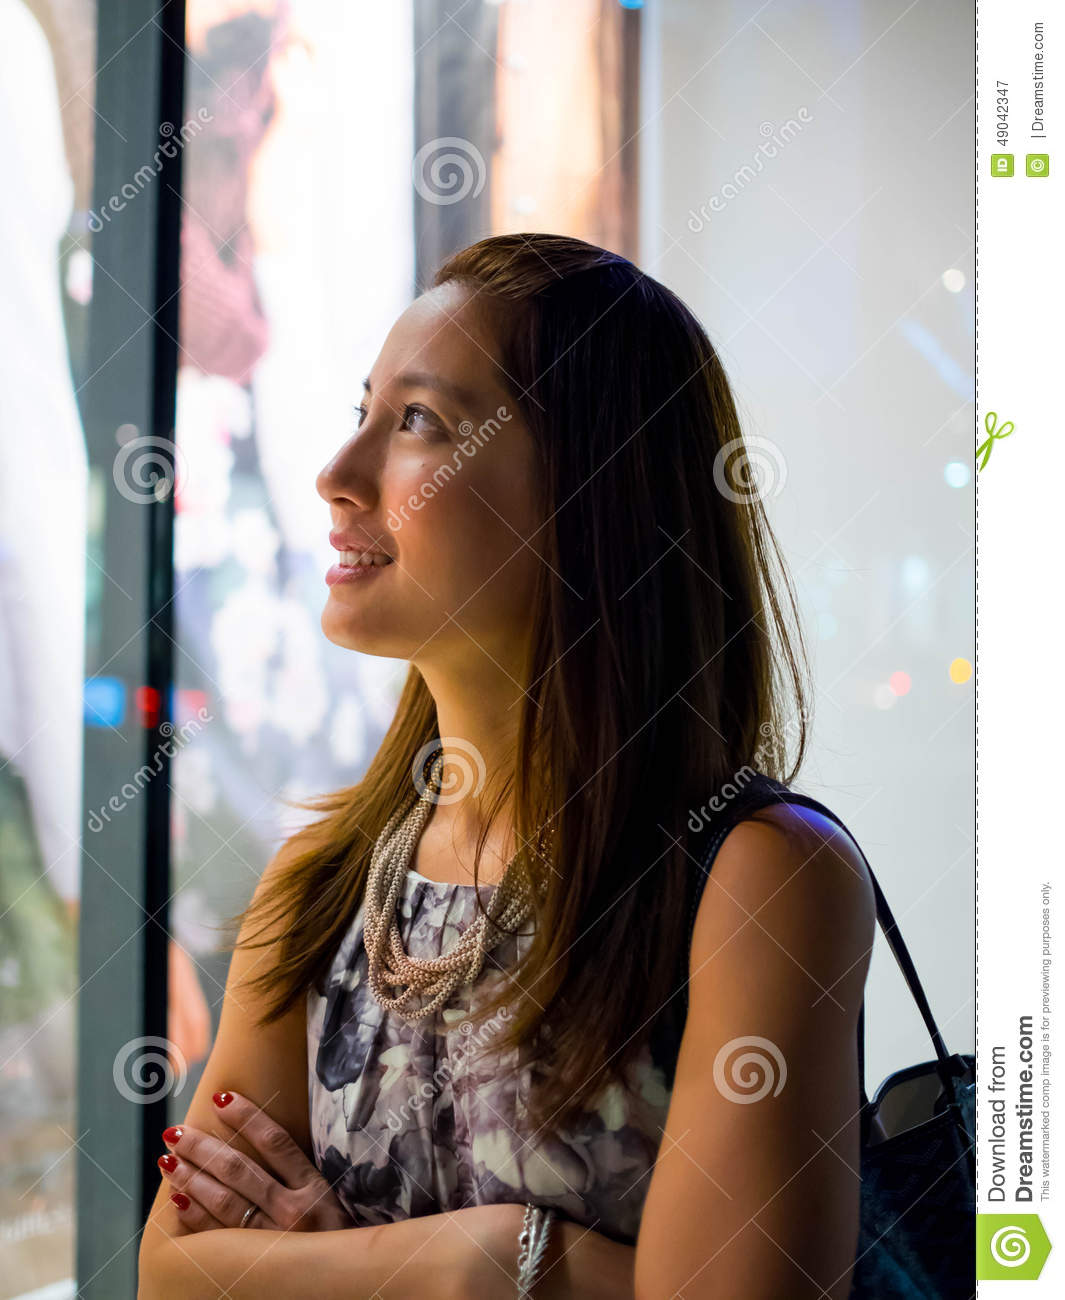 Attractive, stylish, fashionable young asian woman window shopping